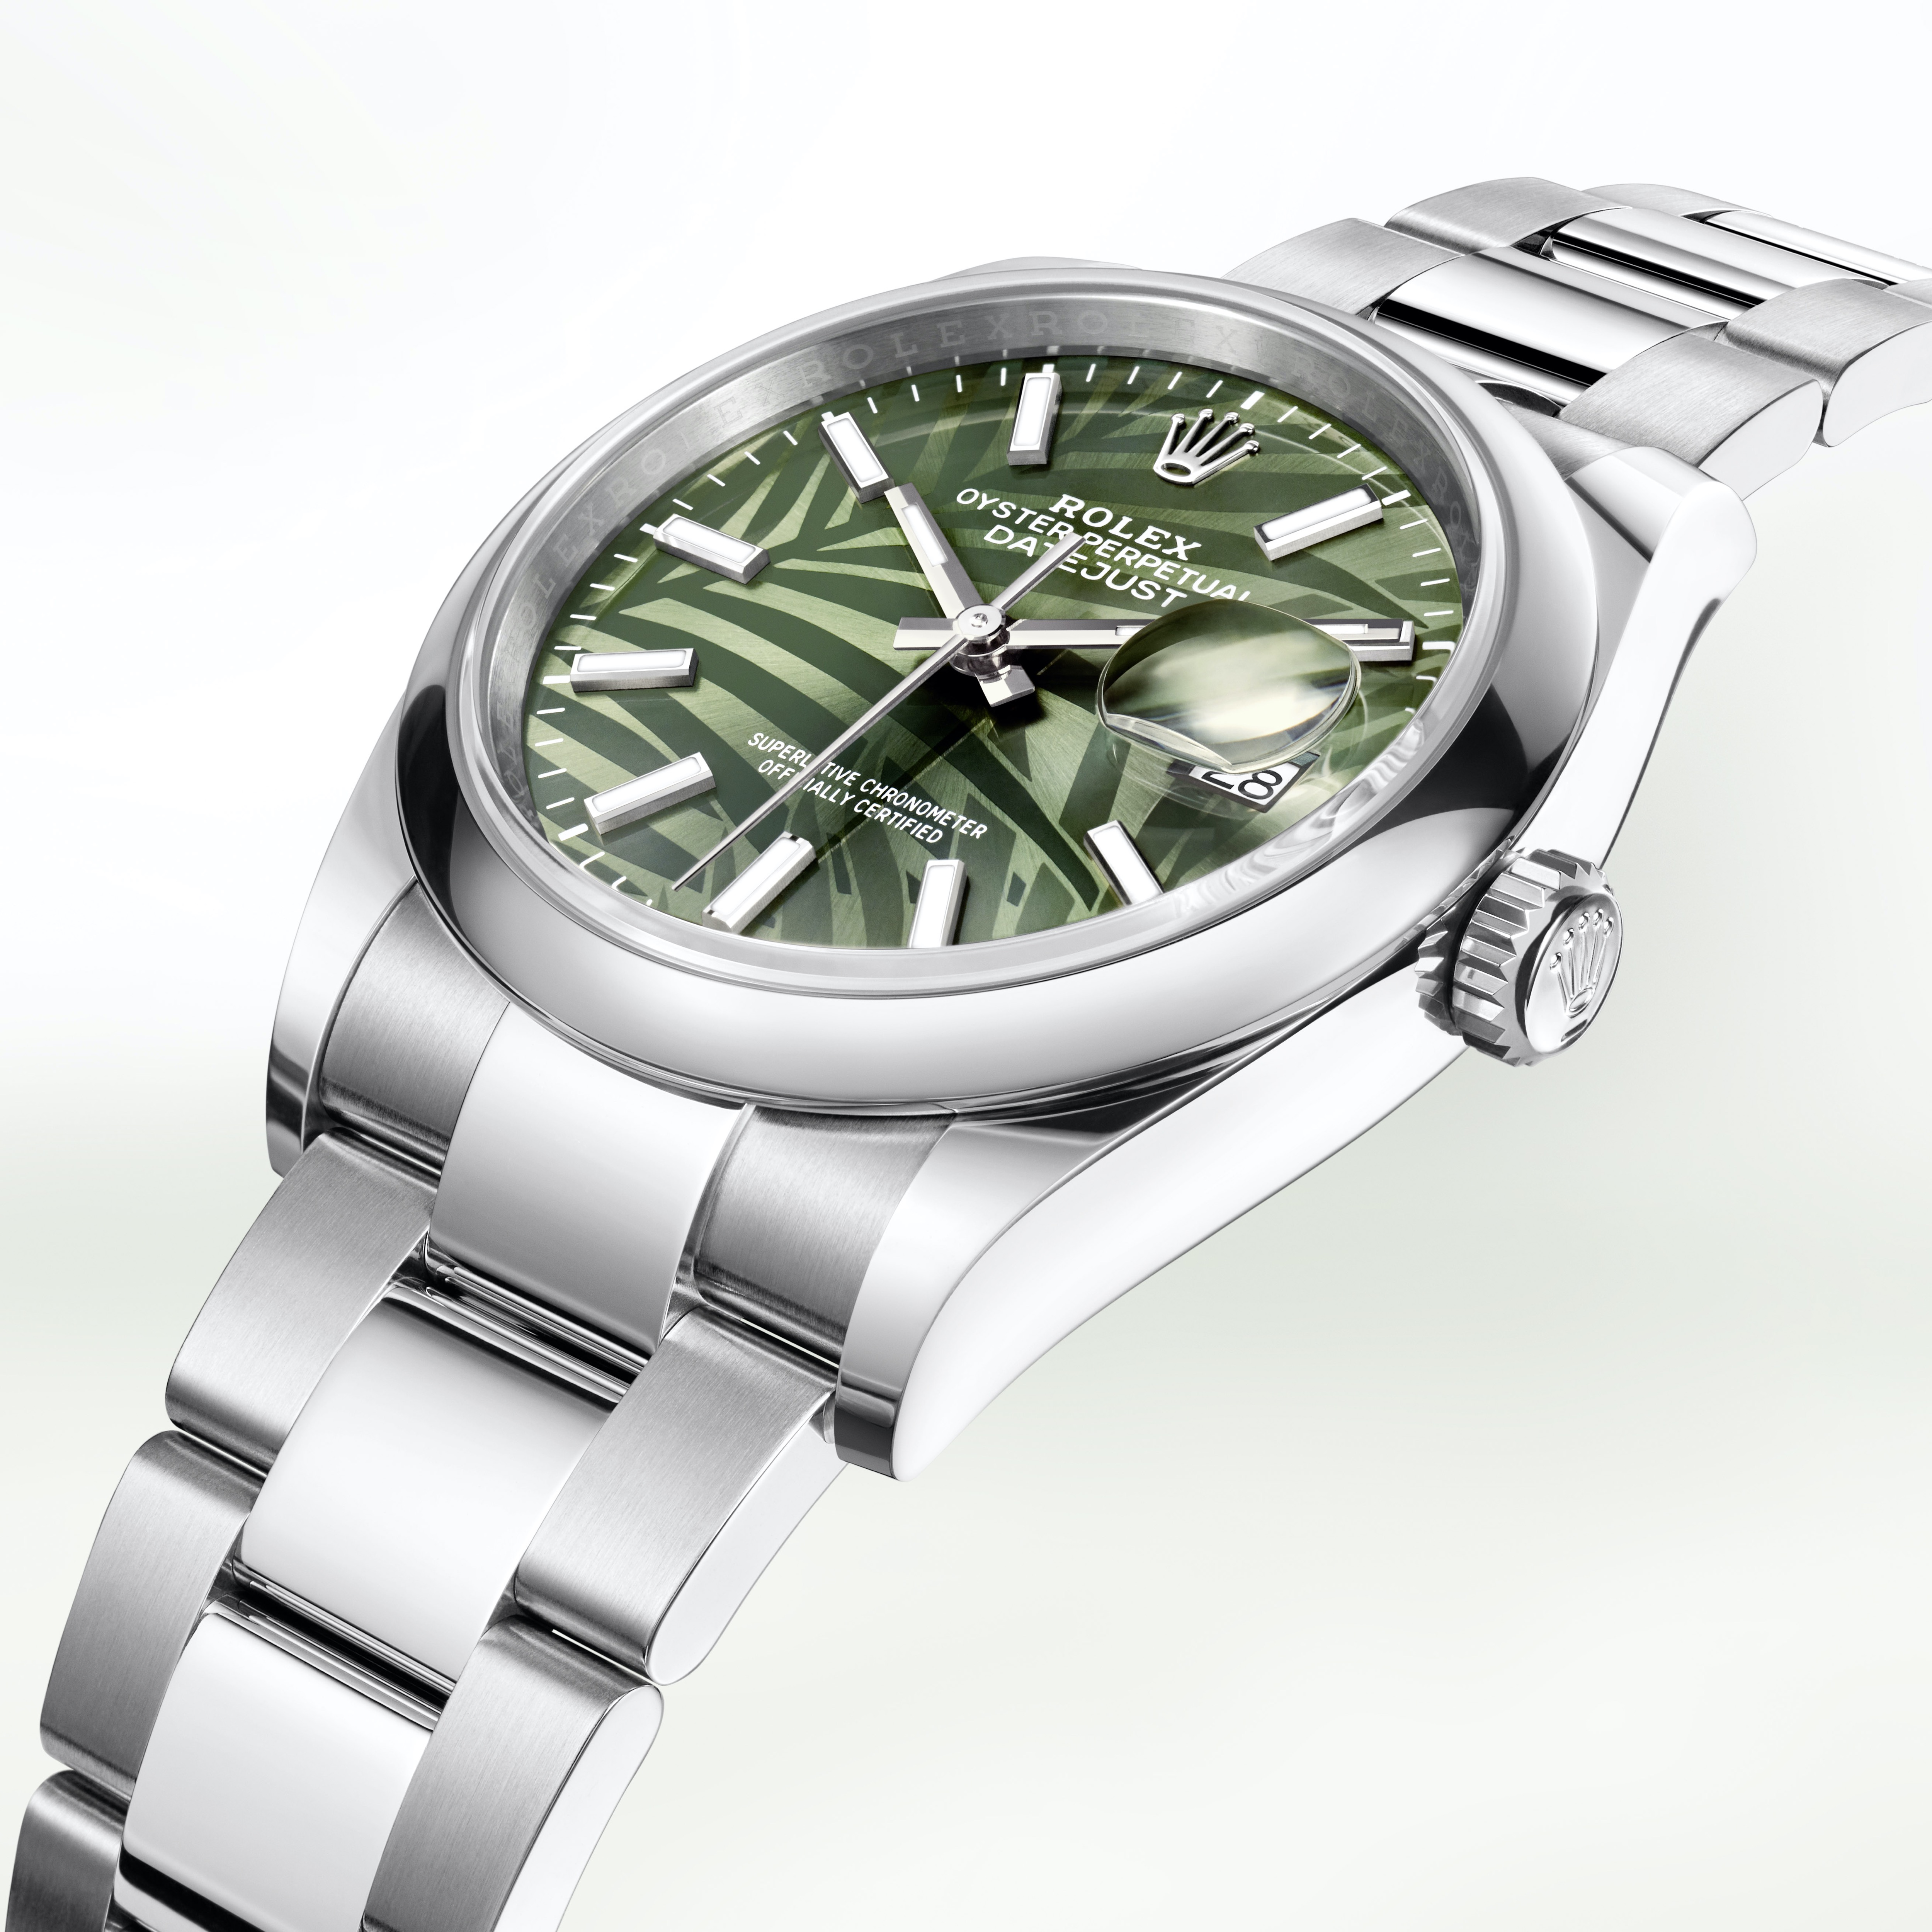 Oyster Perpetual Datejust 36 - Palm Motif